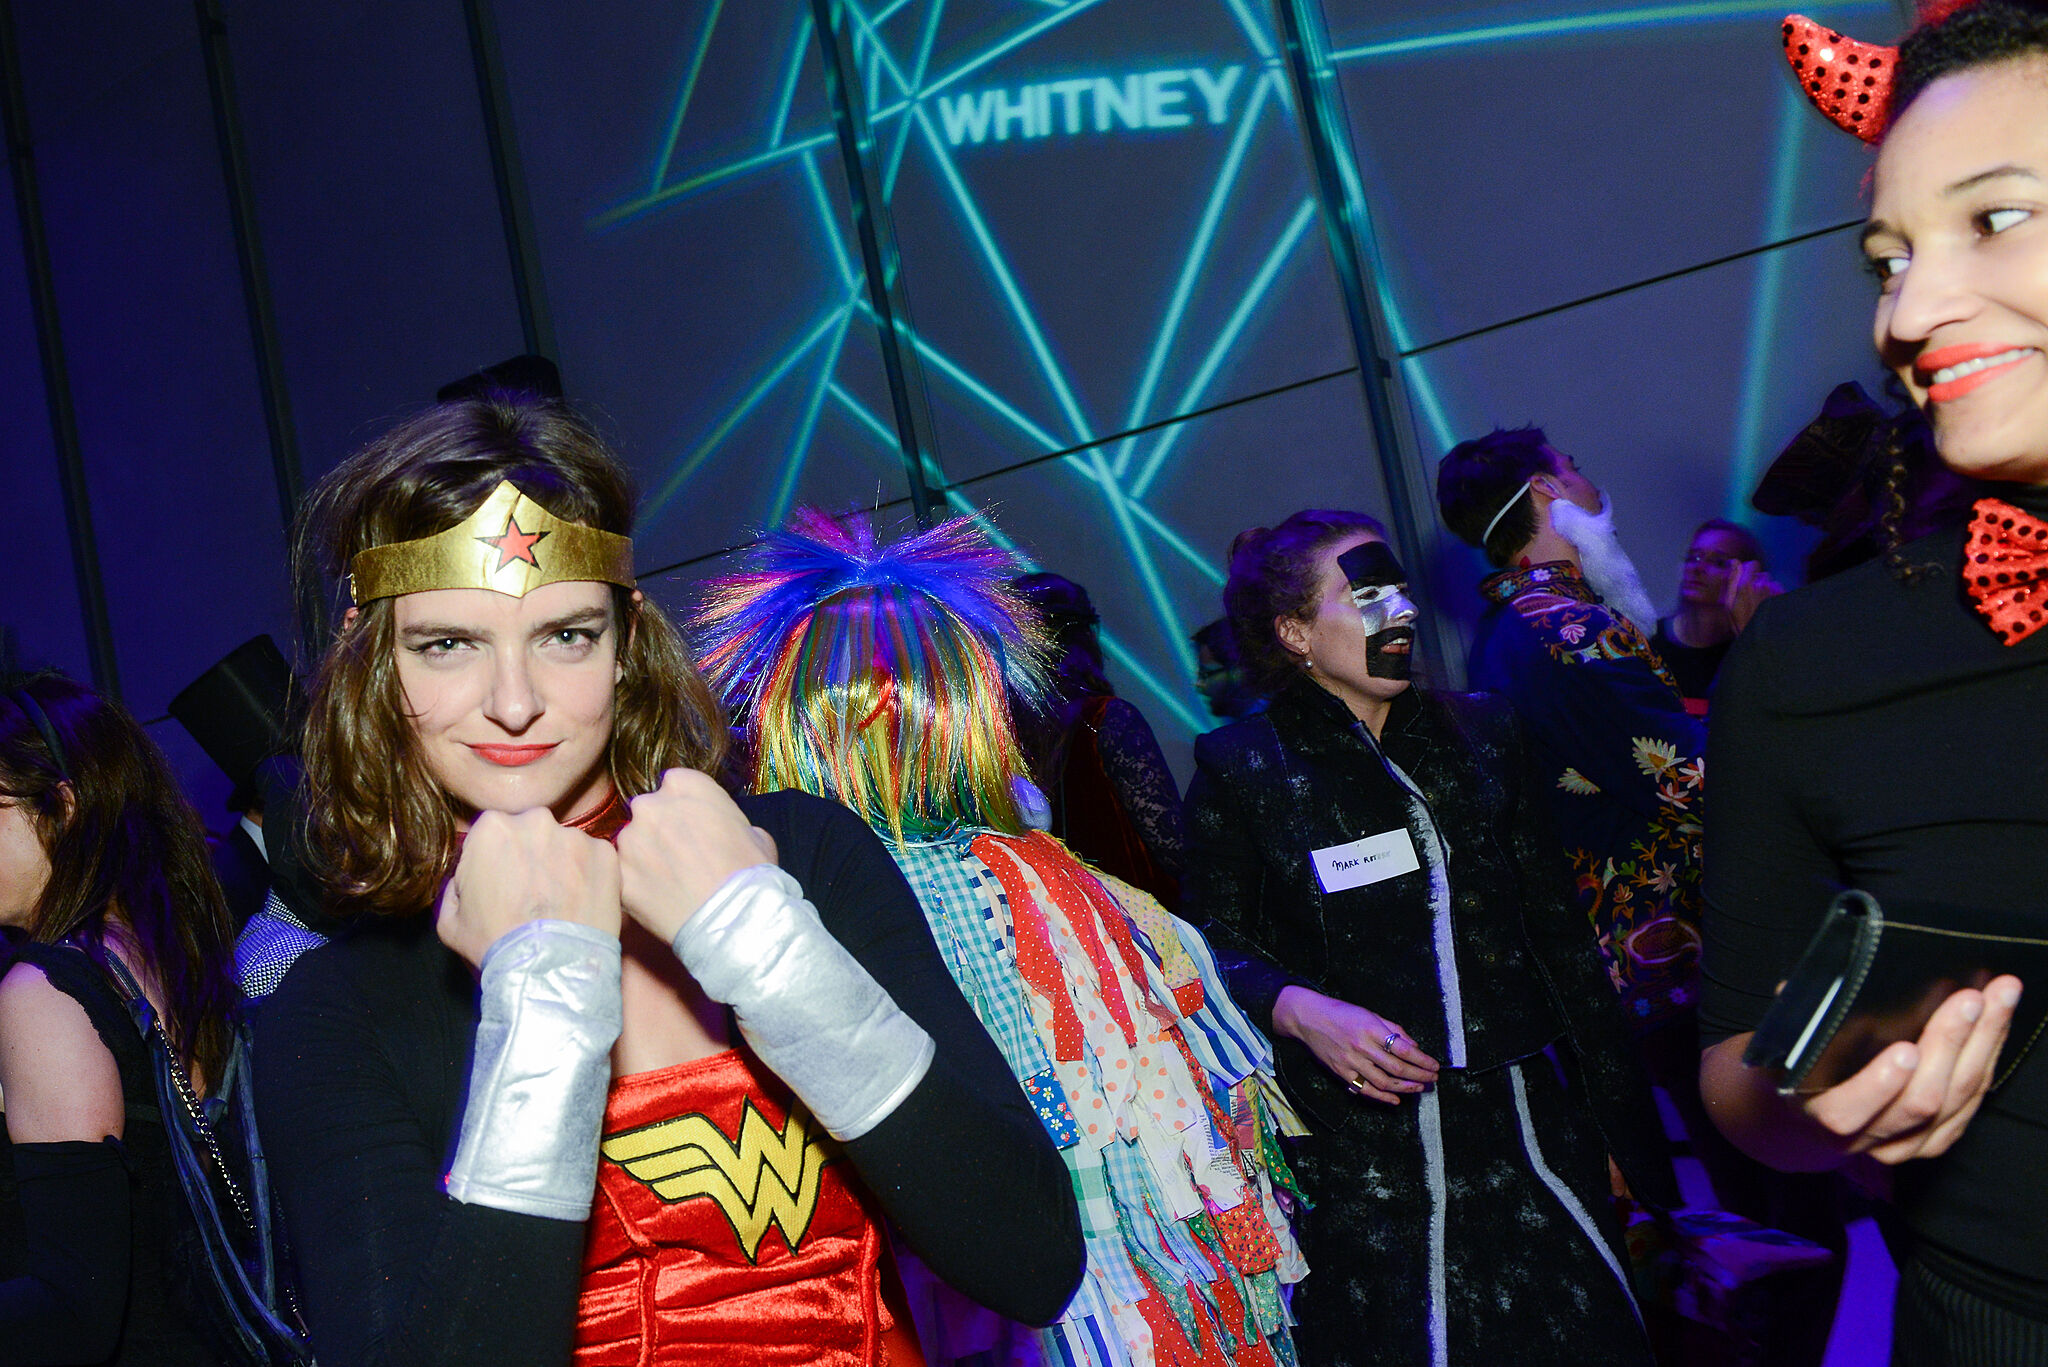 A photo of a person in a Wonder Woman costume at the Whitney.